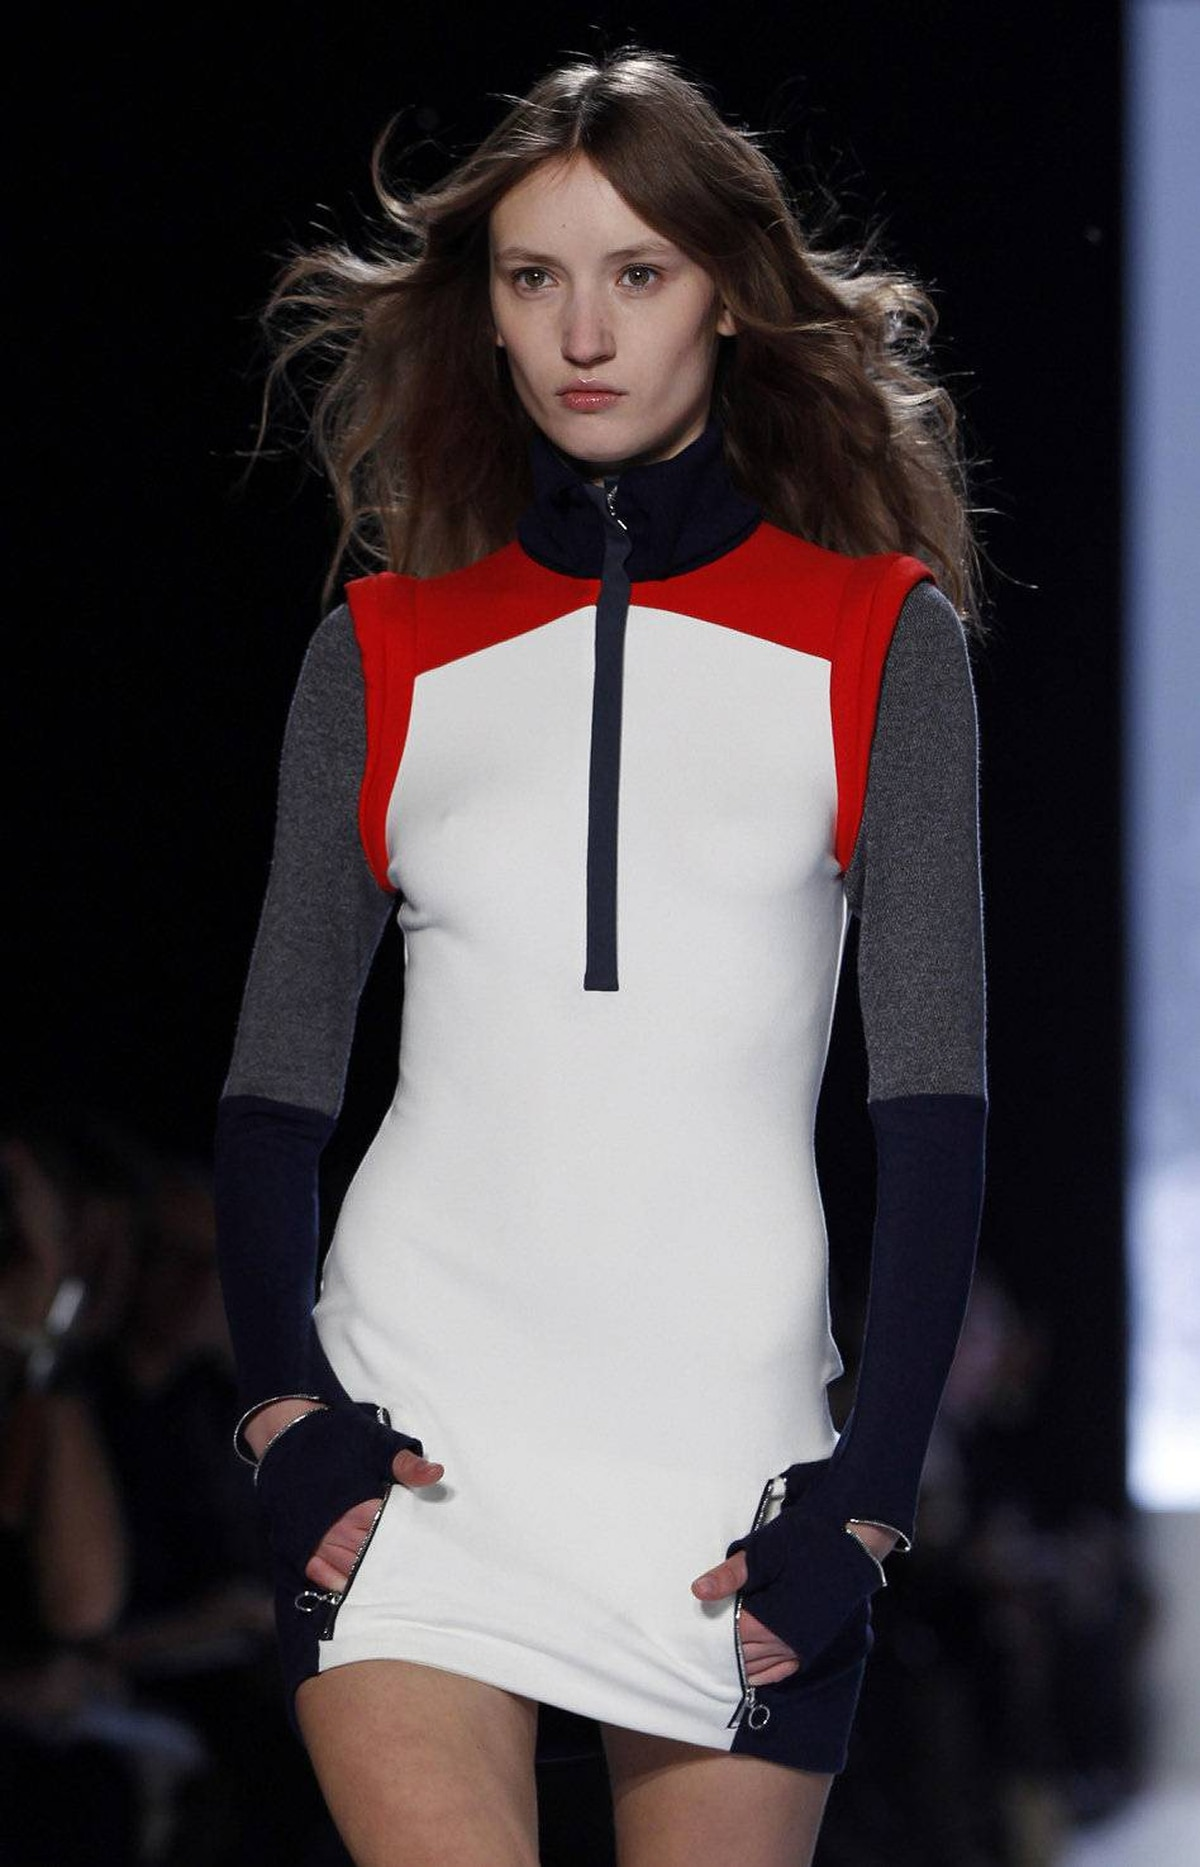 A grouping of body-skimming racer dresses, like this one, show designer Felipe Oliveira Baptista's forward vision for the brand, best known for its preppy tennis shirts. Note the placement of a cuff circling the shoulder – a flourish that feels subtly space age.